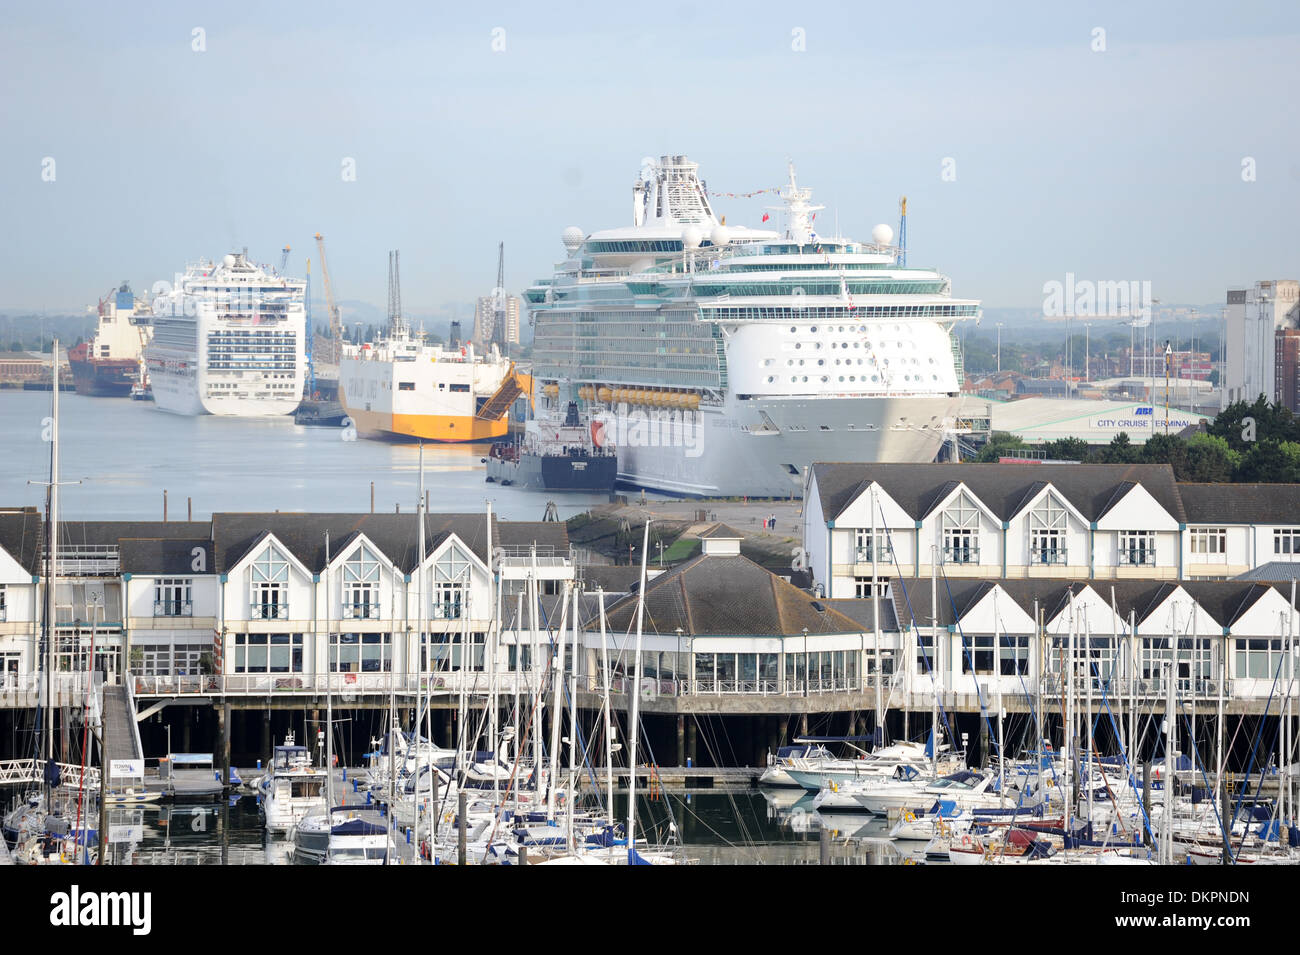 Royal Caribbean International's Independence of the Seas cruise ship at port in Southampton. - Stock Image